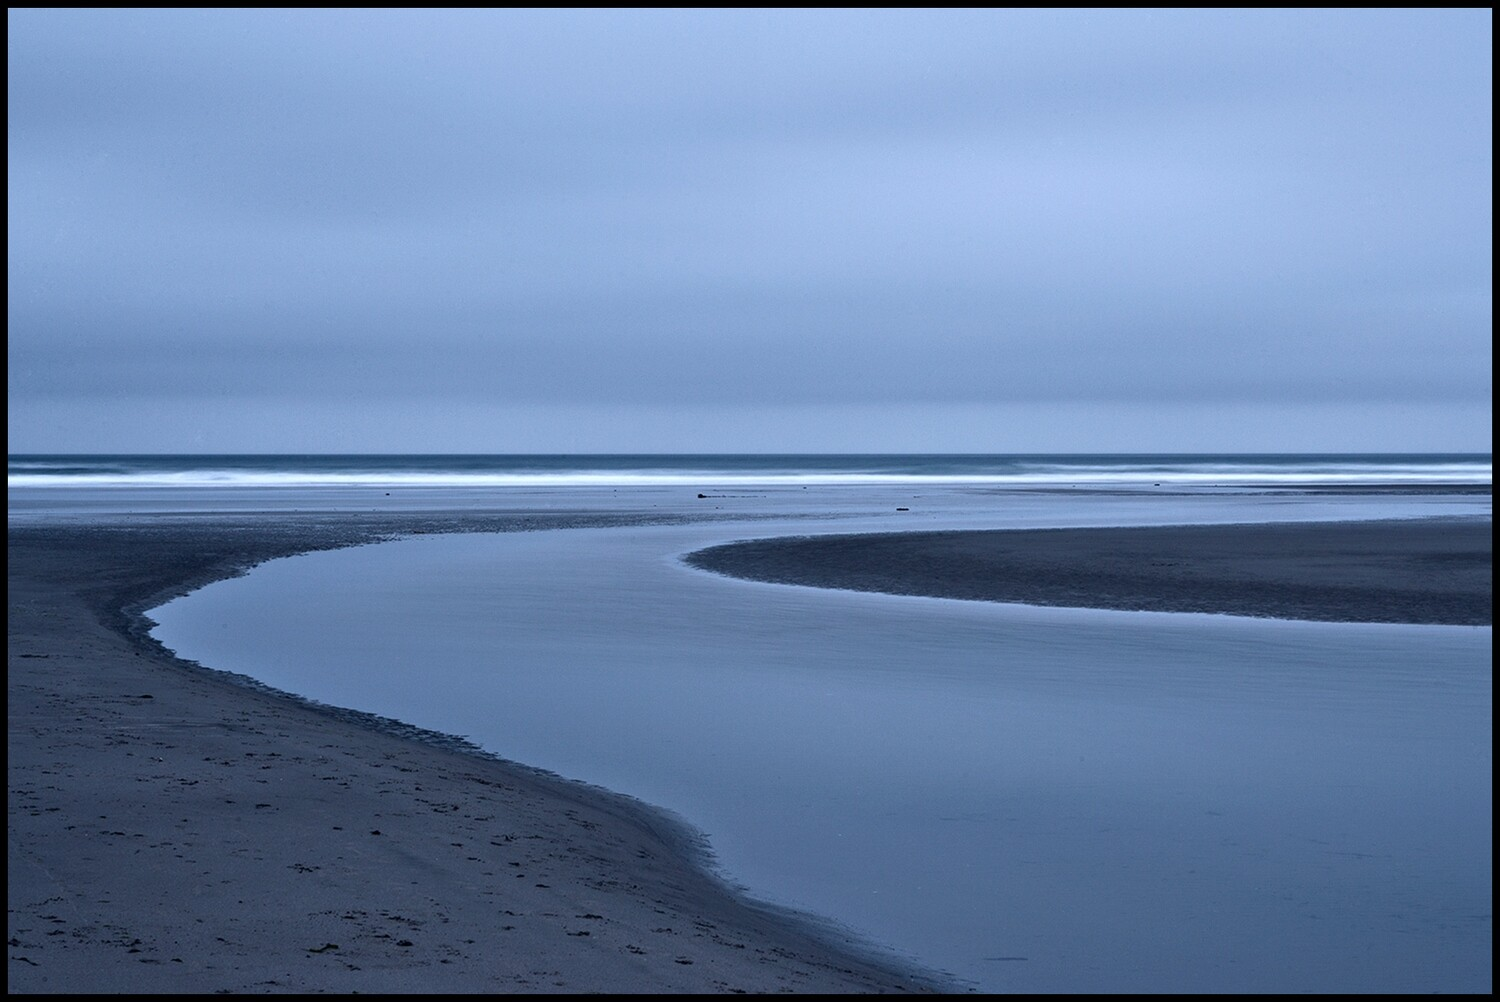 Tide Pools - Yachats, OR